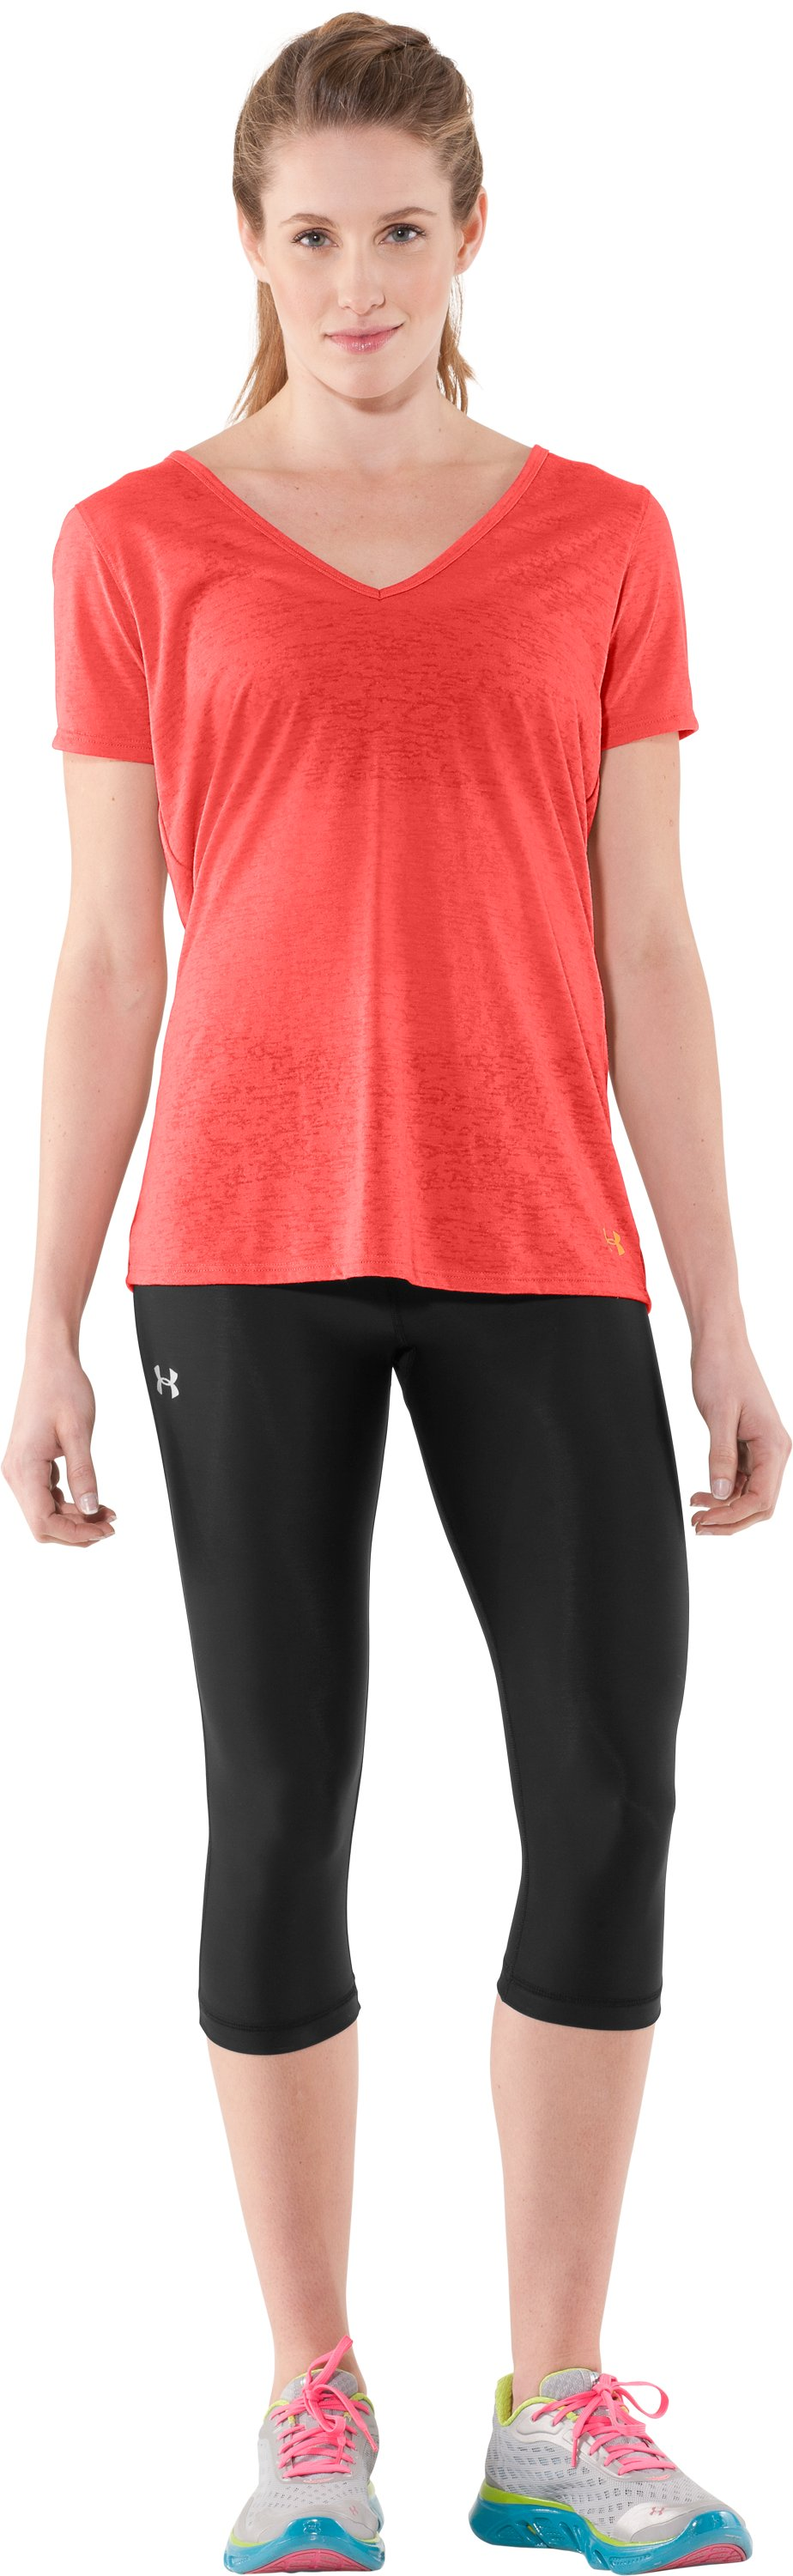 Women's Achieve Burnout T-Shirt, Fire